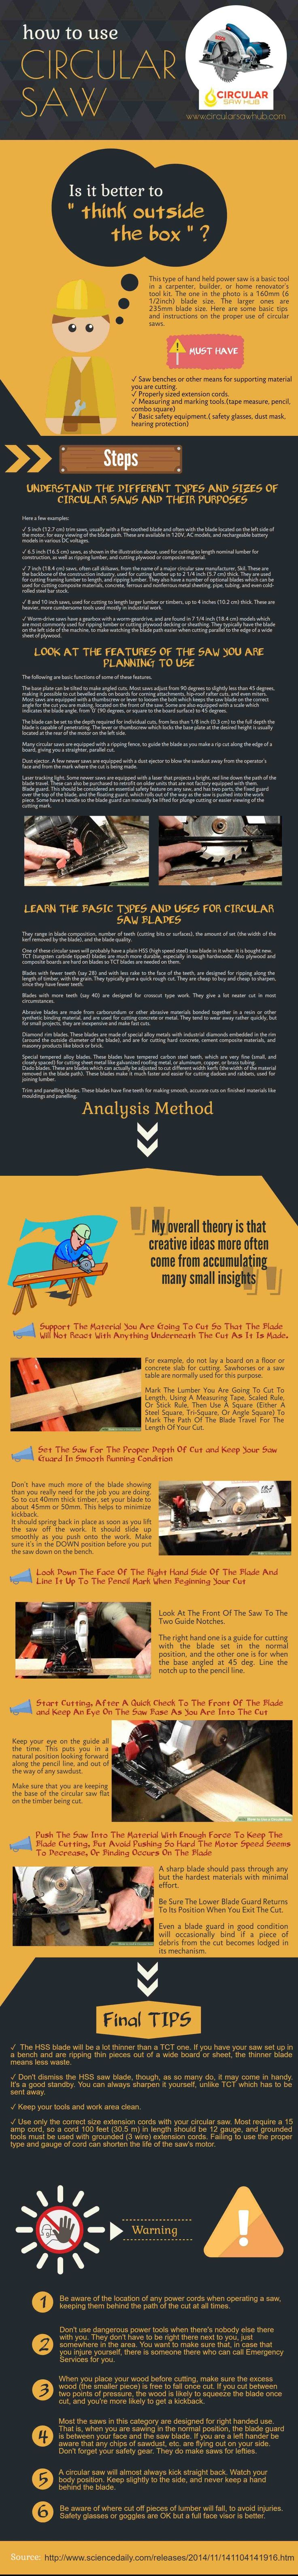 http://www.circularsawhub.com/ Circular saw is one of the power saw and essential tools for the carpenters, builders or woodworkers. Here I create an infographic about this topic. This infographic covers the complete guideline of how to use a circular saw.